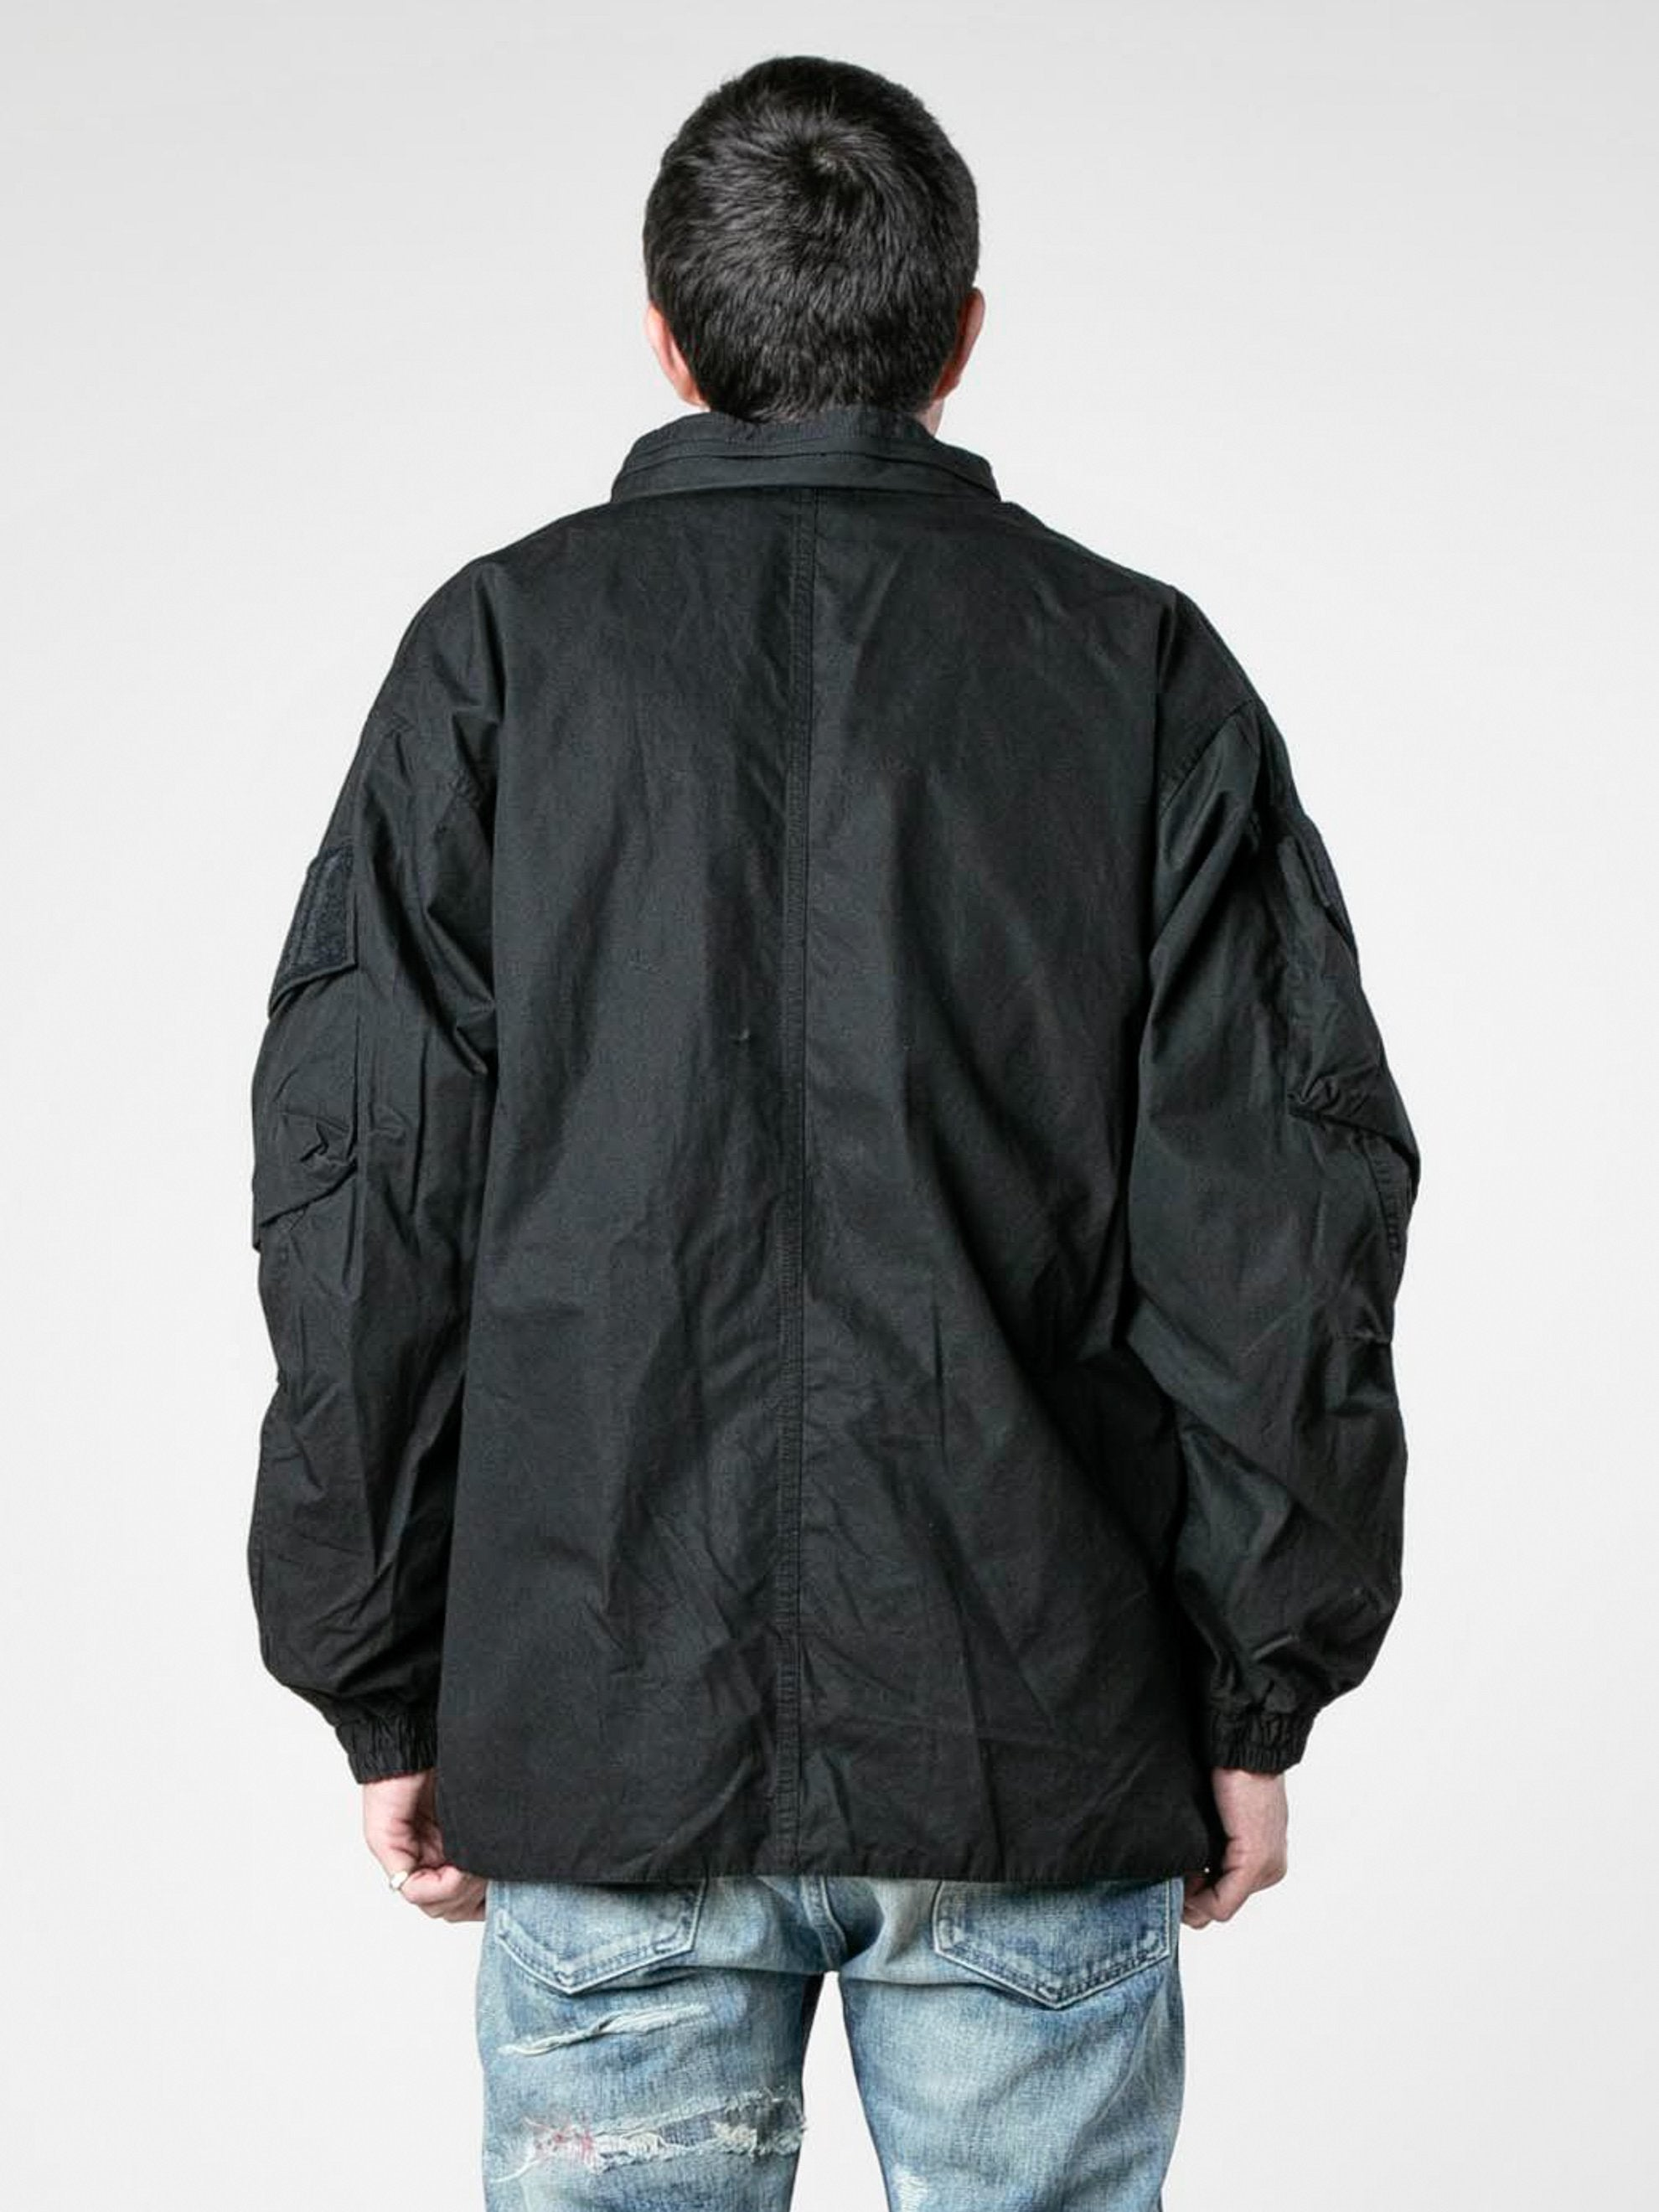 Black Modular / Jacket. Cotton. Weather 6